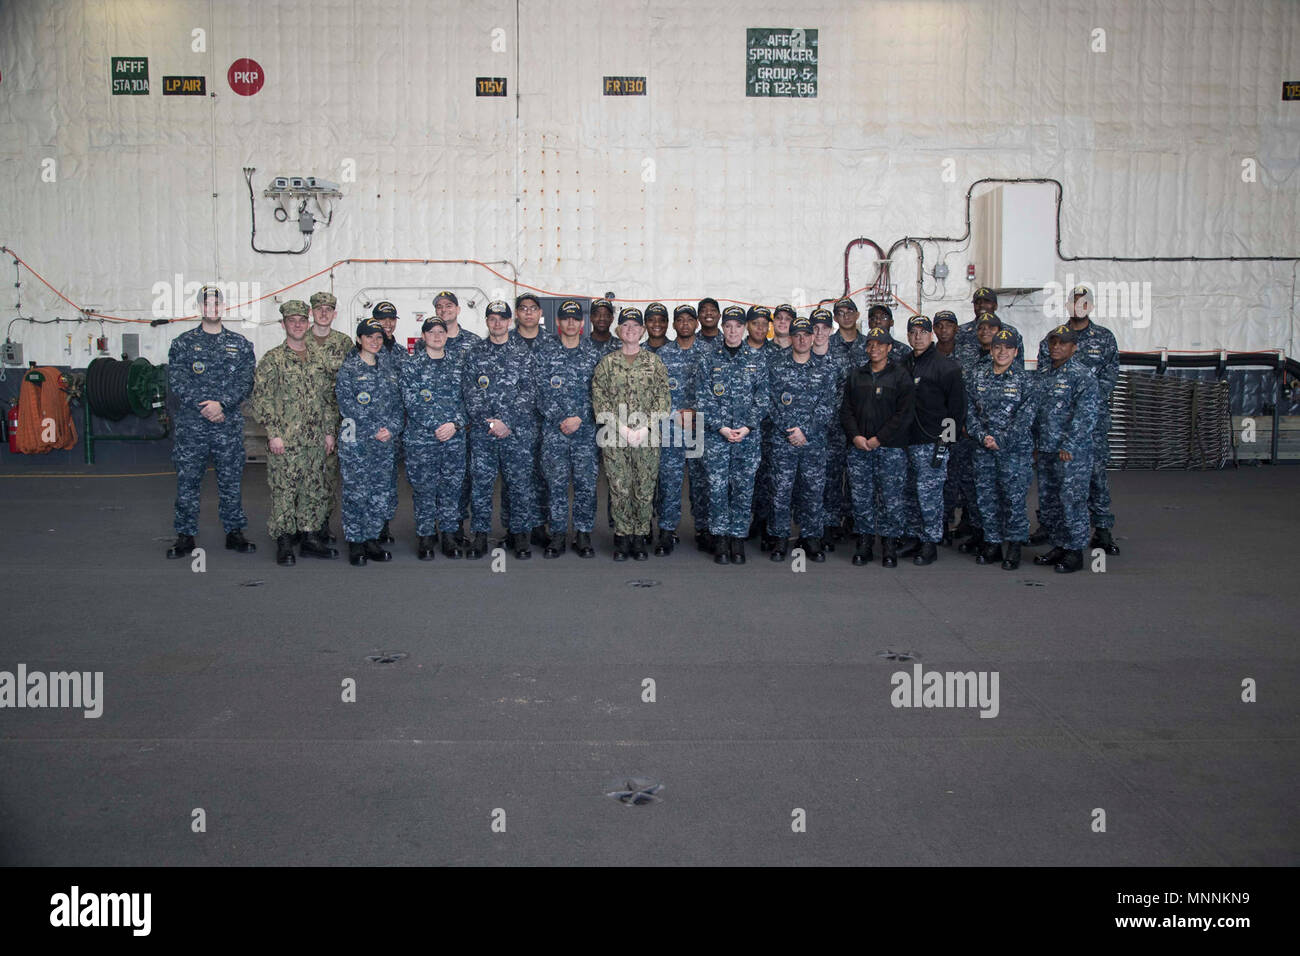 NORFOLK, Va. (Mar. 16, 2018) -- USS Gerald R. Ford's (CVN 78) administrative division, Lt. Cmdr. Melissa Chope, Ford's administrative officer, and Command Master Chief Laura Nunley pose for a photo after completing a uniform inspection for Division in the Spotlight. - Stock Image